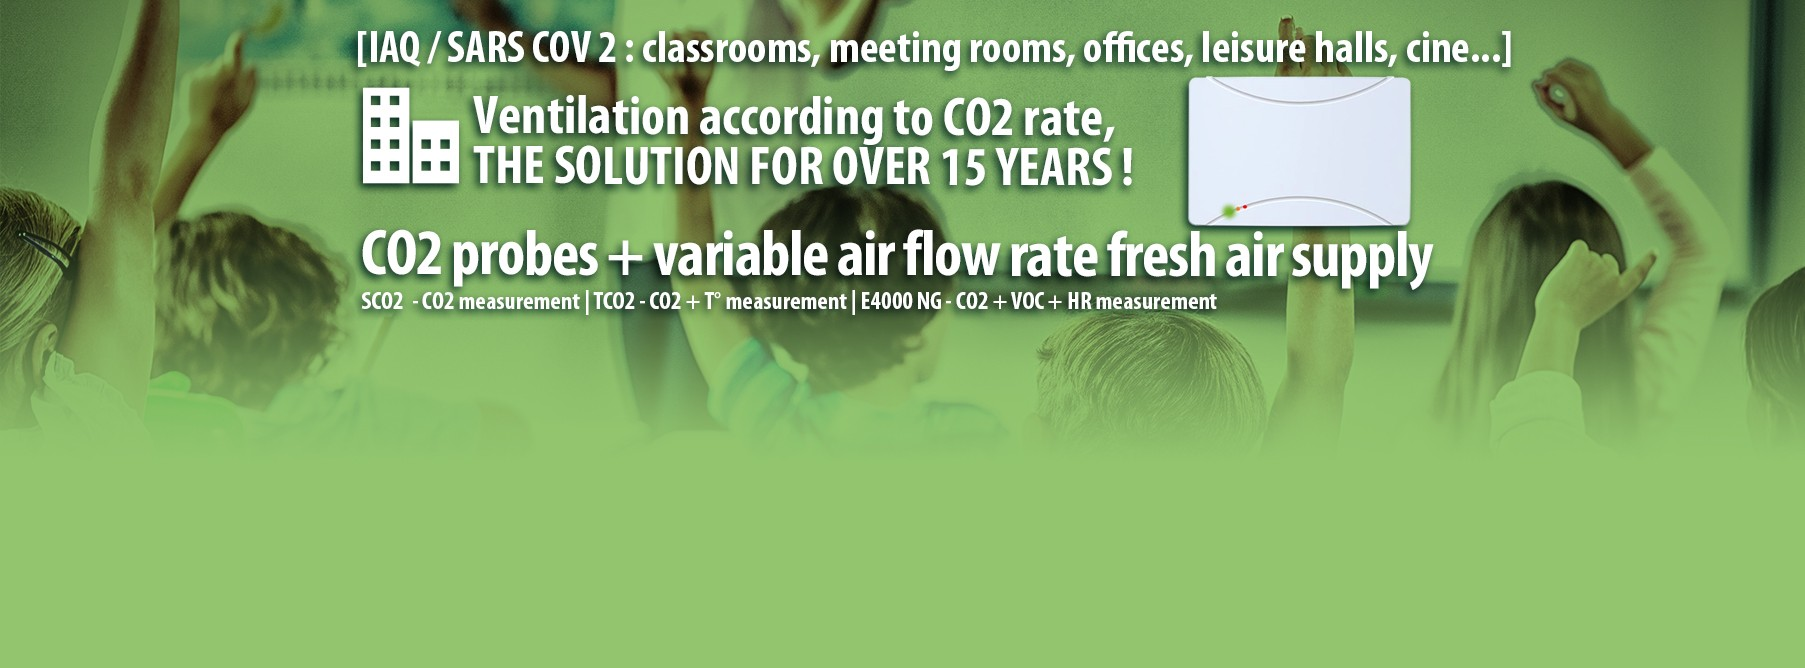 Ventilation according to CO2 rate